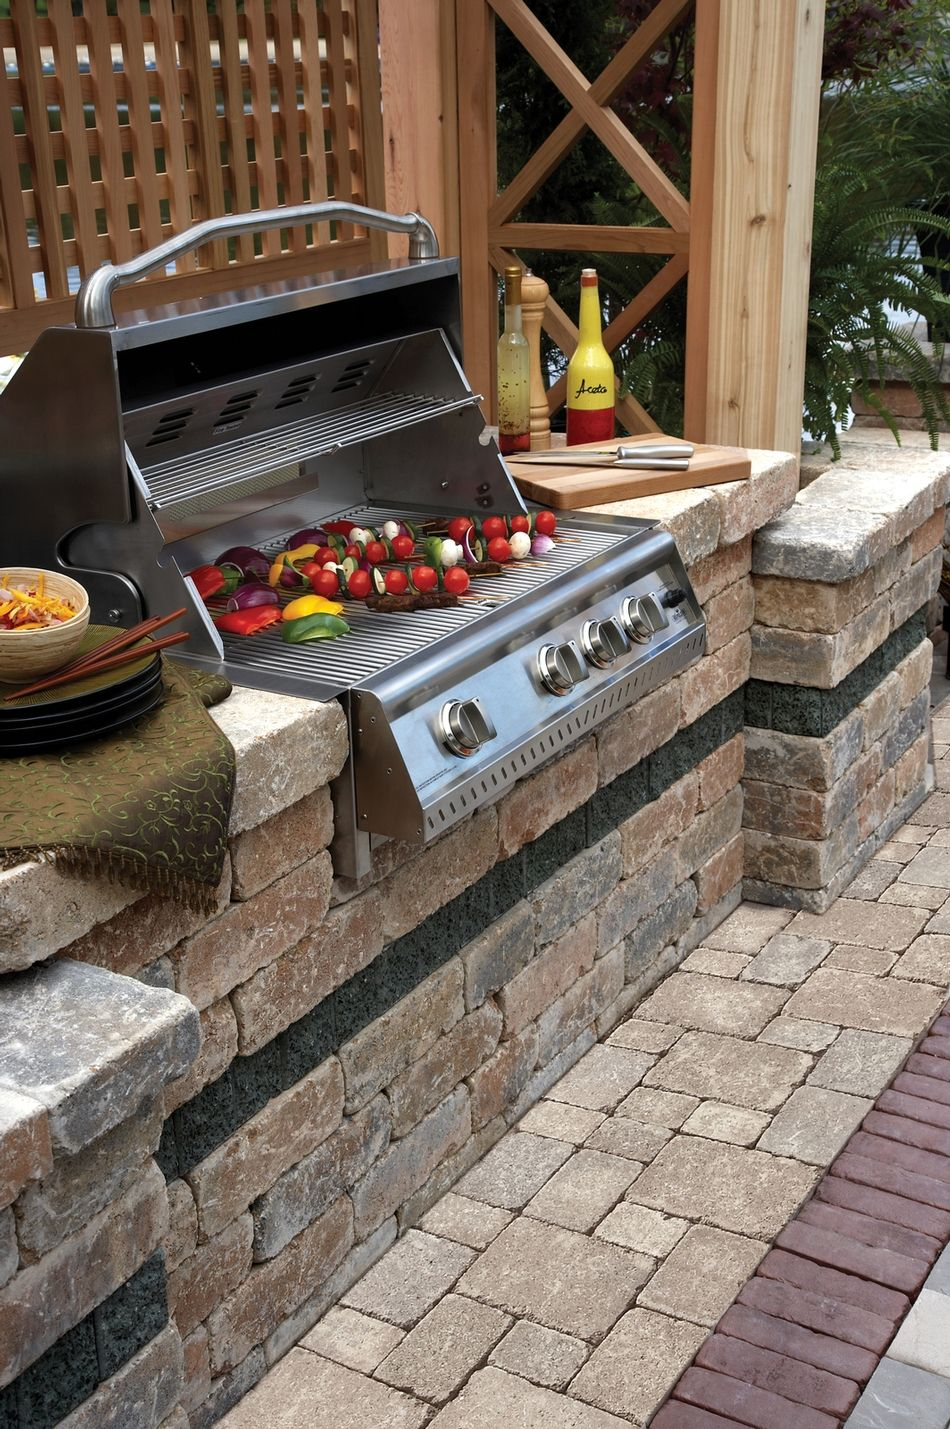 Brussels Dimensional™ BBQ Grill Island Our Outdoor Kitchens Offer Function,  Beauty, And Are